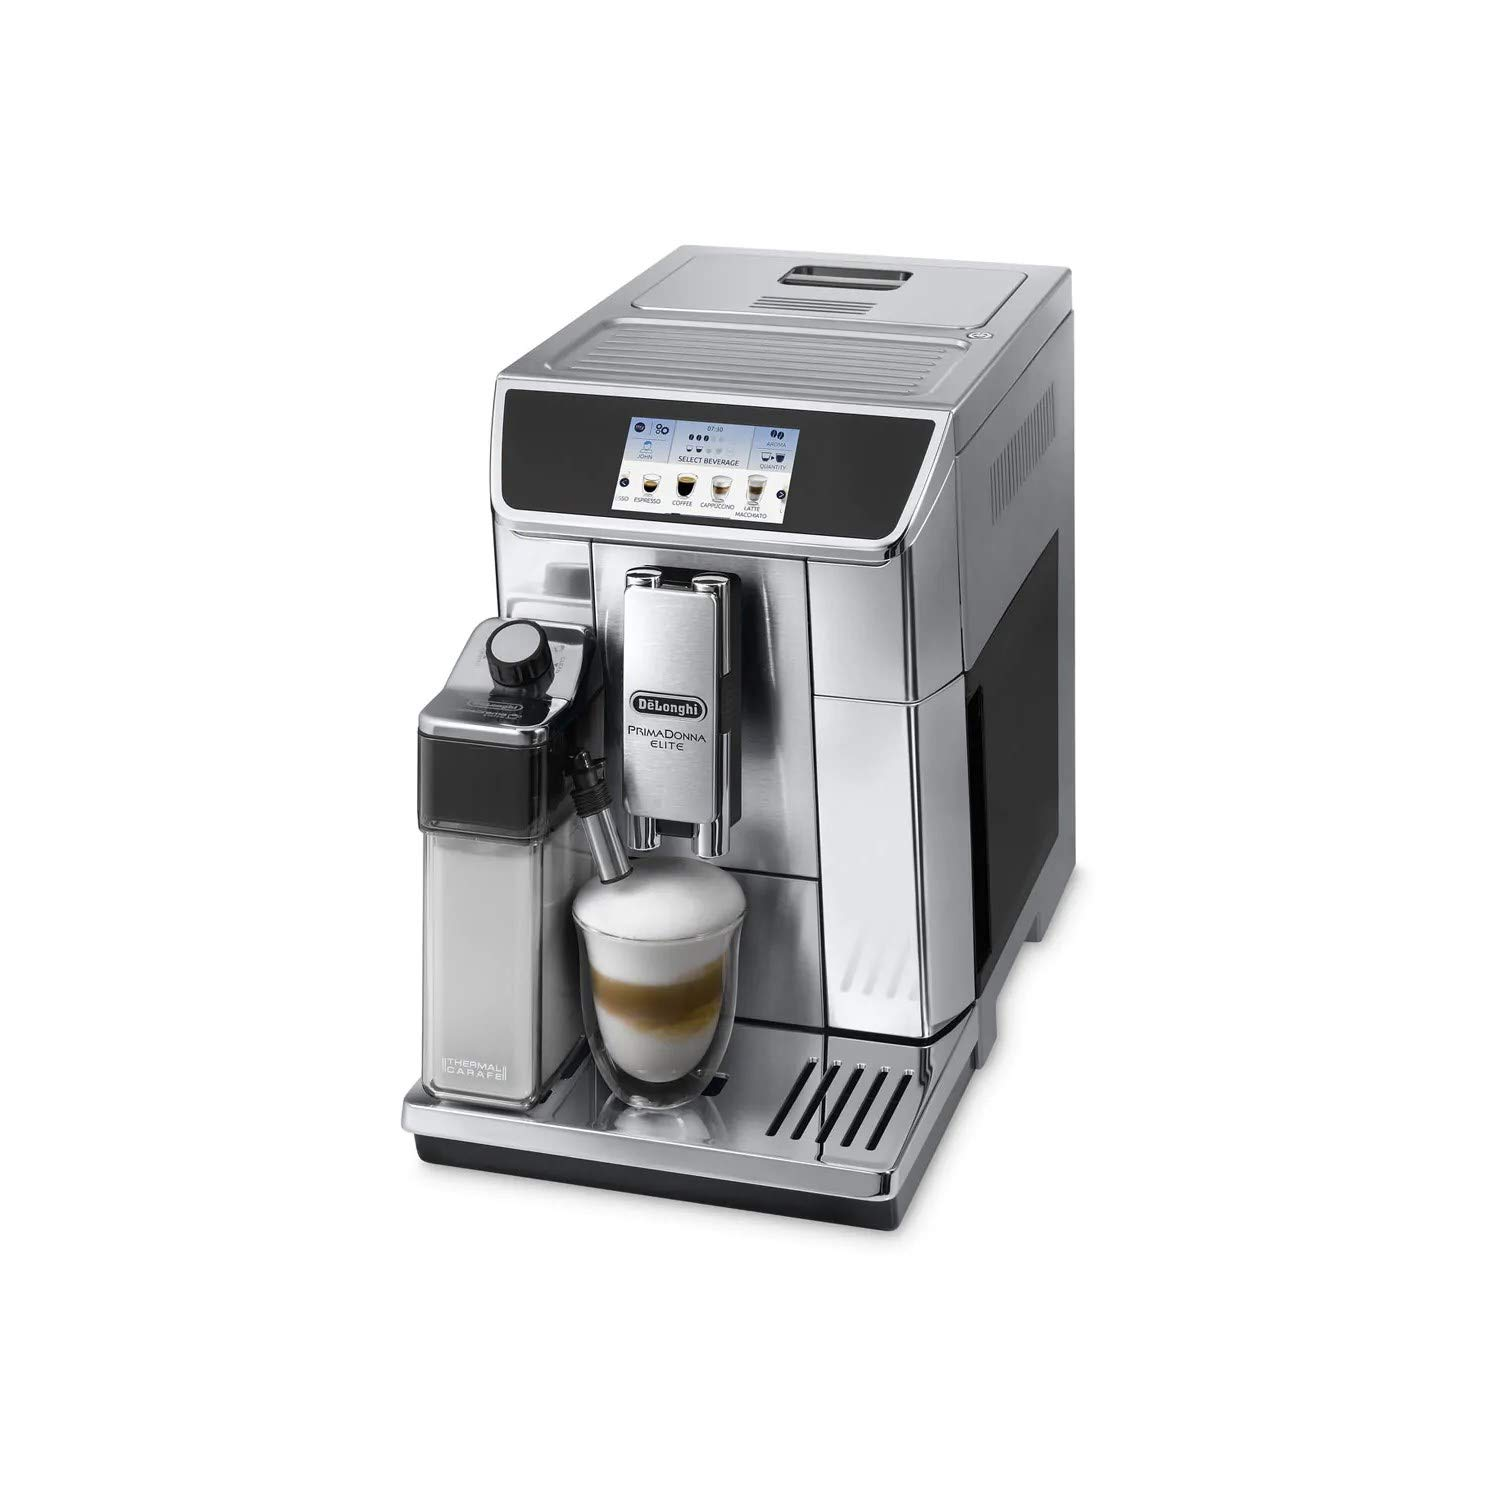 Delonghi super-automatic espresso coffee machine with double boiler, milk frother, chocolate maker for brewing espresso, cappuccino, latte, macchiato hot chocolate. ECAM65075MS PrimaDonna